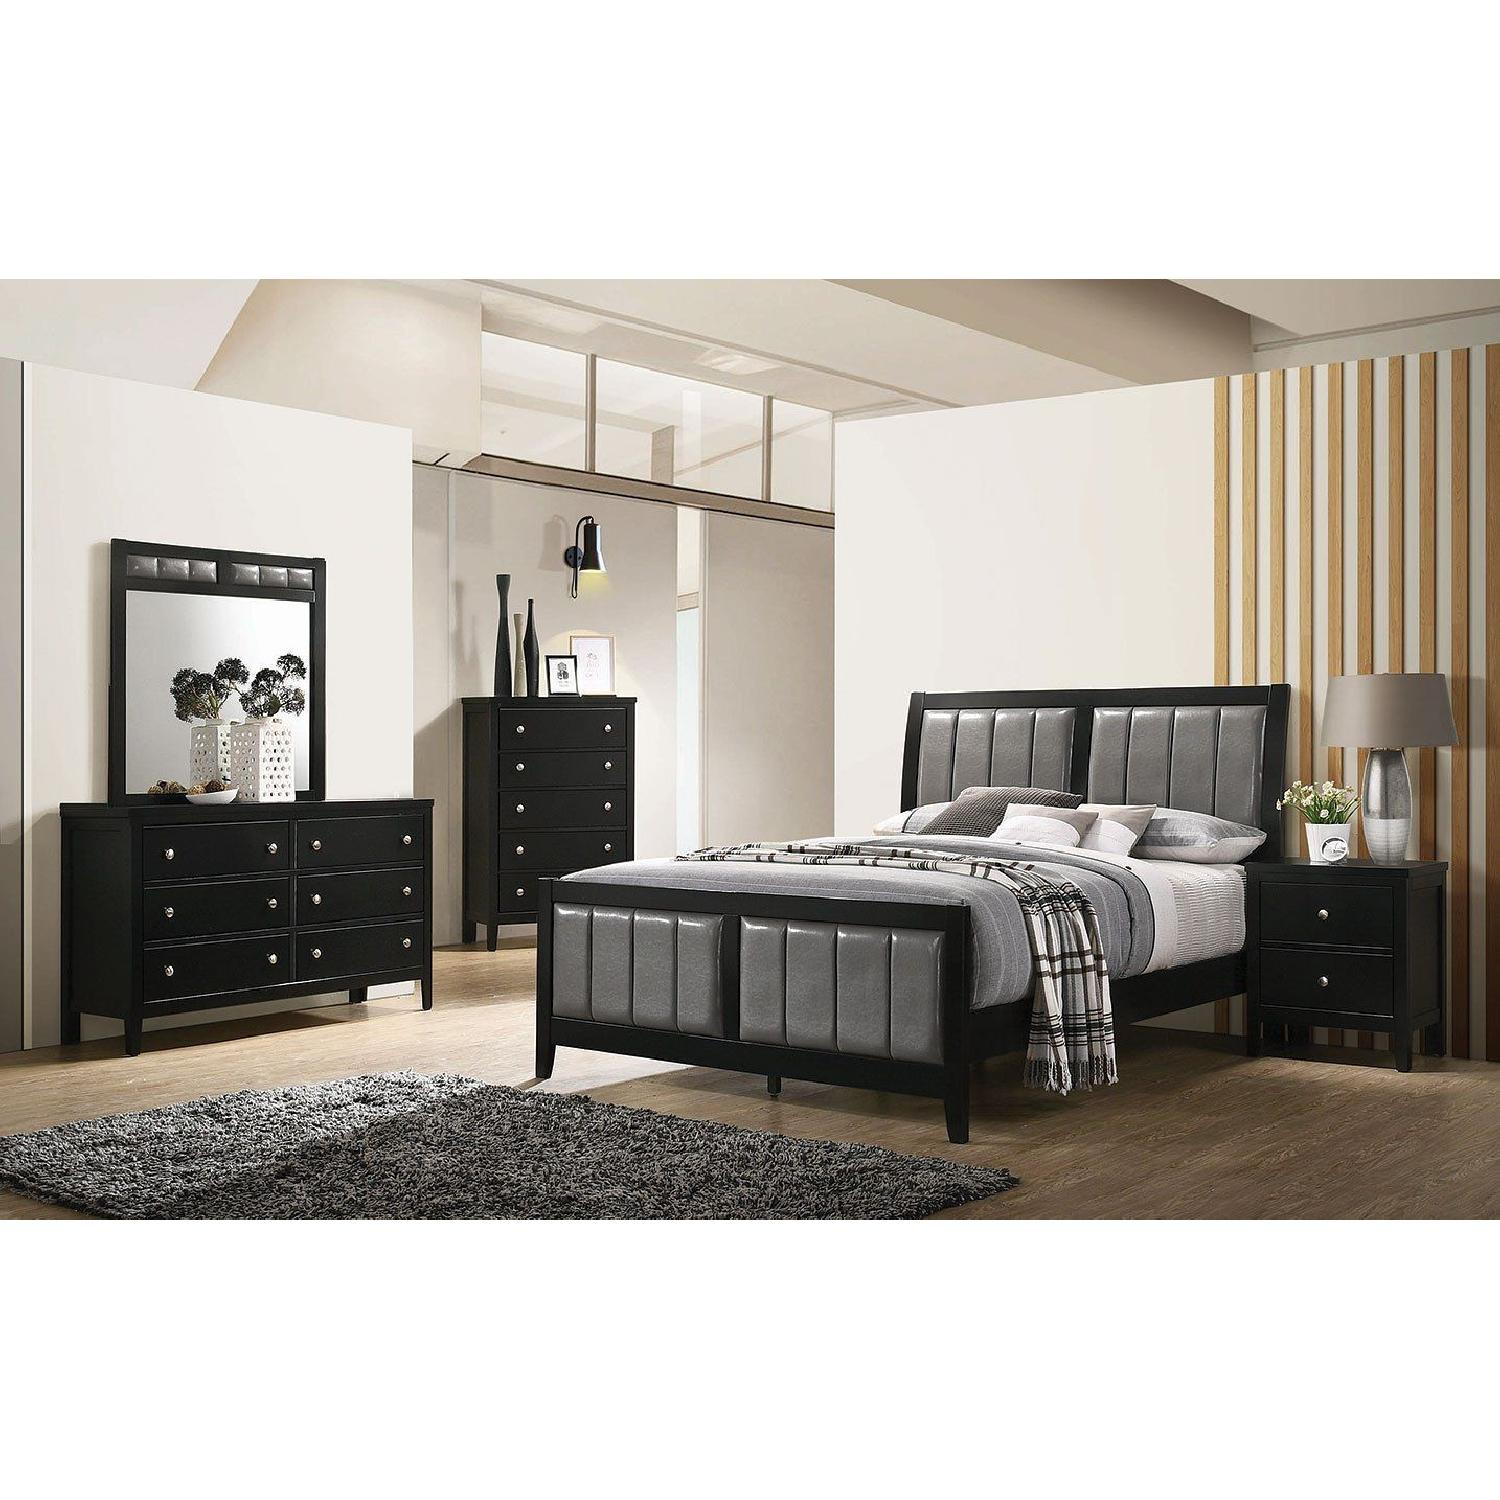 Queen Bed in Black Wood Frame w/ Grey Leatherette Headboard - image-6